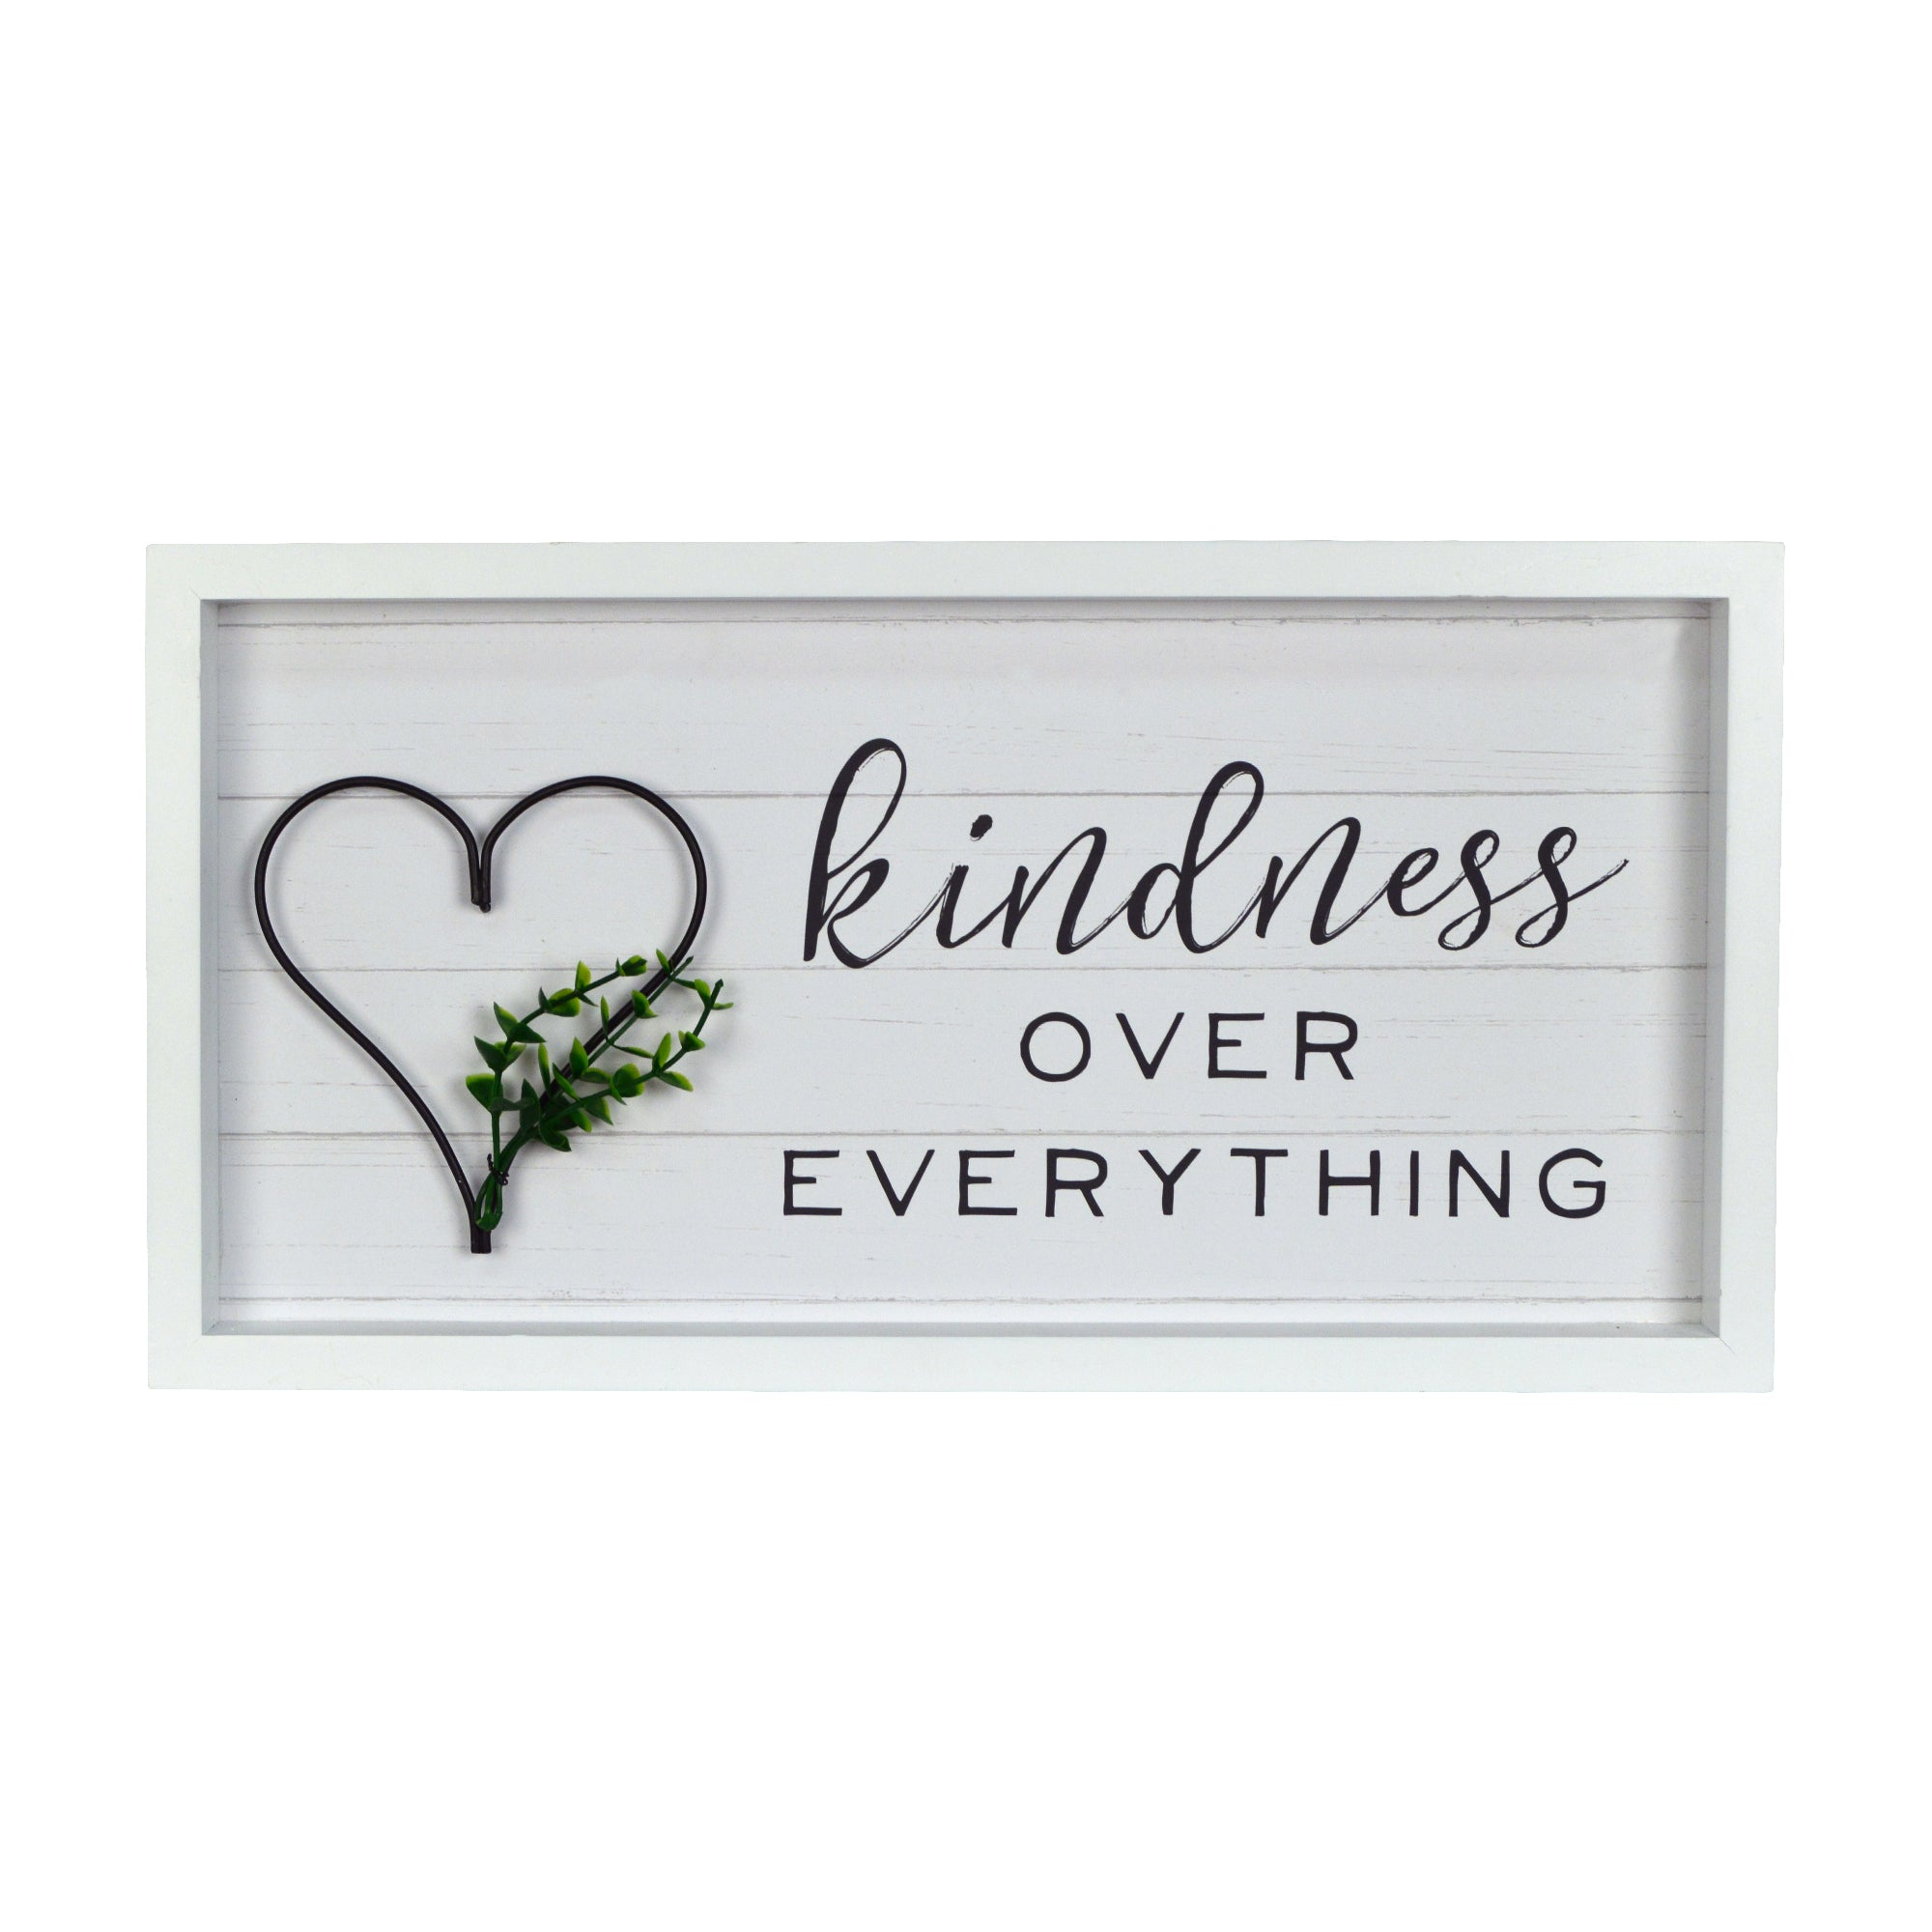 Kindness Over Everything 17.5